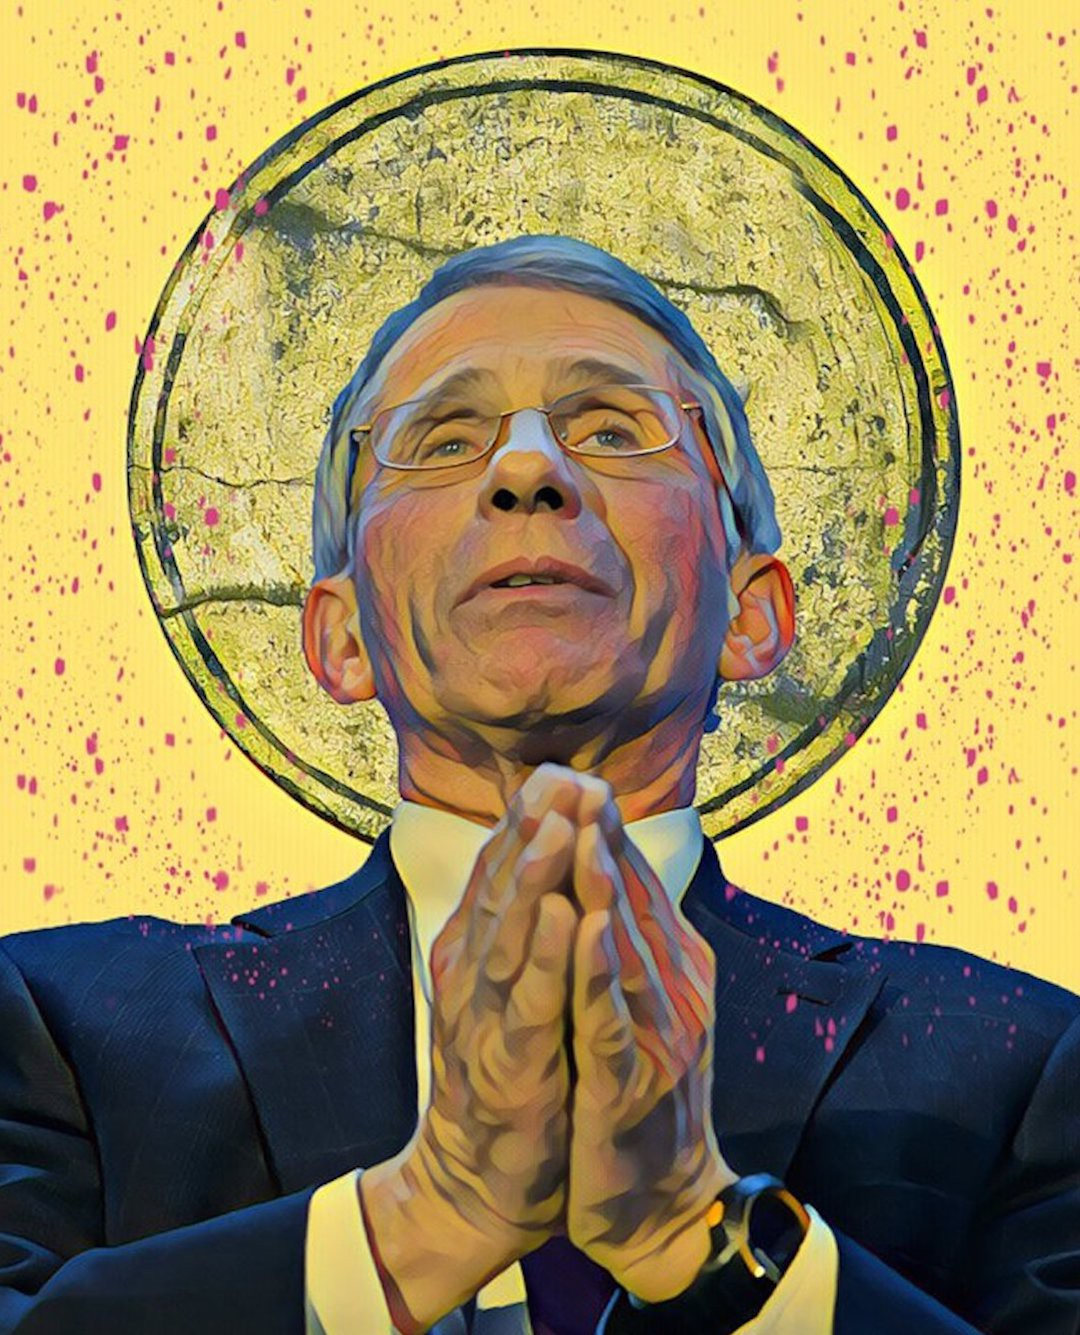 Dr. Fauci state of grace